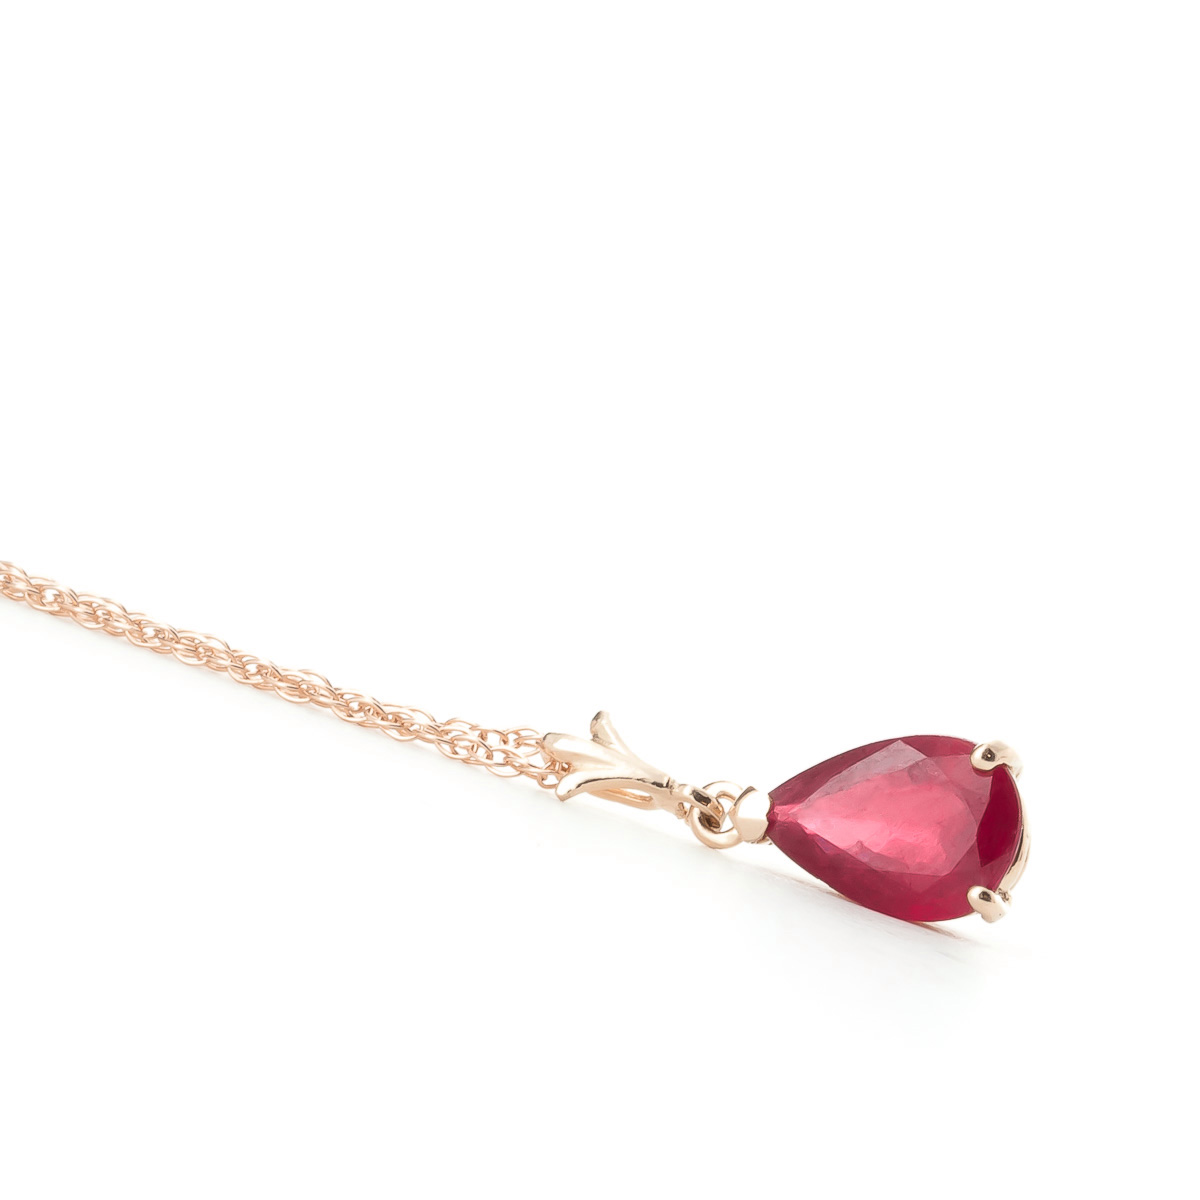 Ruby Belle Pendant Necklace 1.75ct in 14K Rose Gold